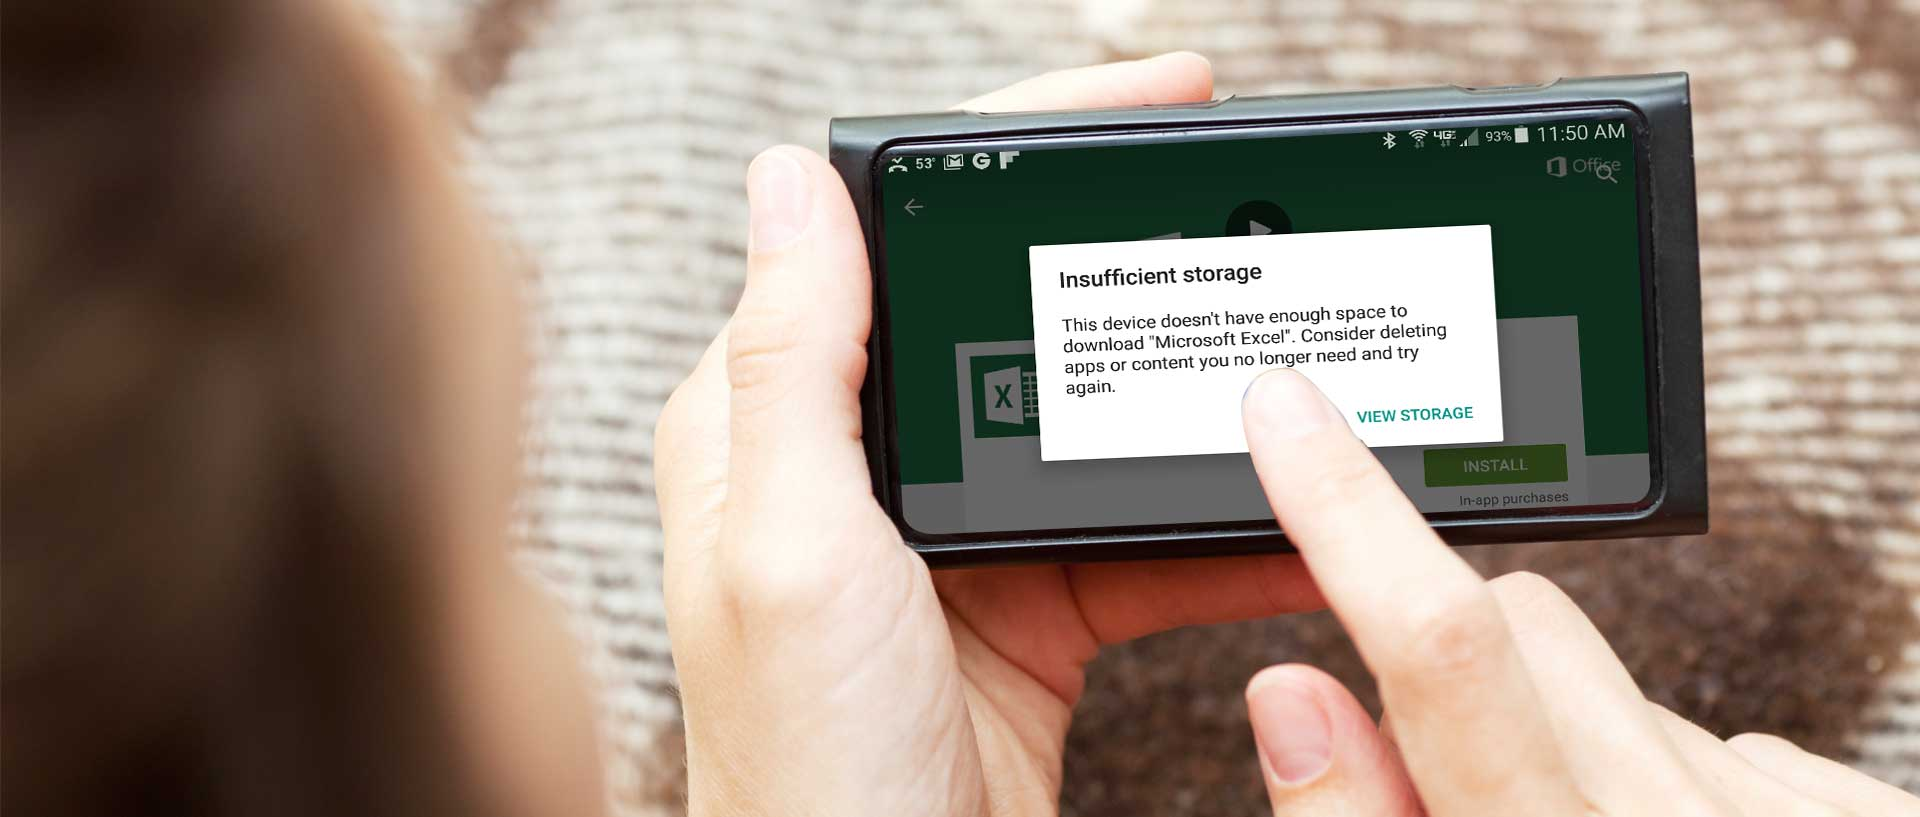 4037dfc7a Insufficient Storage Available Problem Android - Consumer Reports